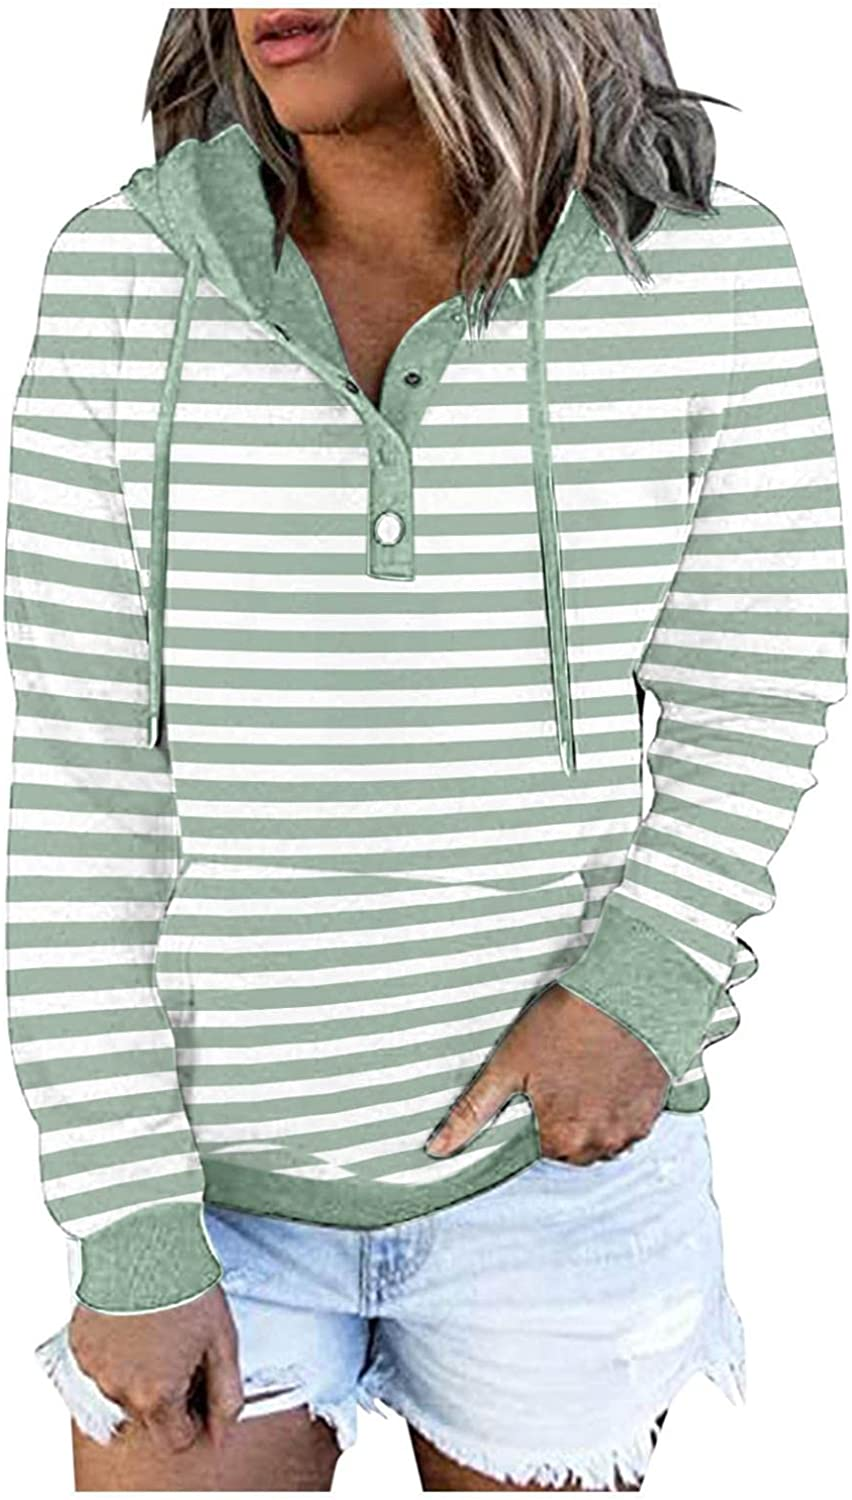 Hoodies for Women,Women's Pullover Hoodies Sweatshirts Tops Casual Button Down Stripe Long Sleeve Tops With Pocket